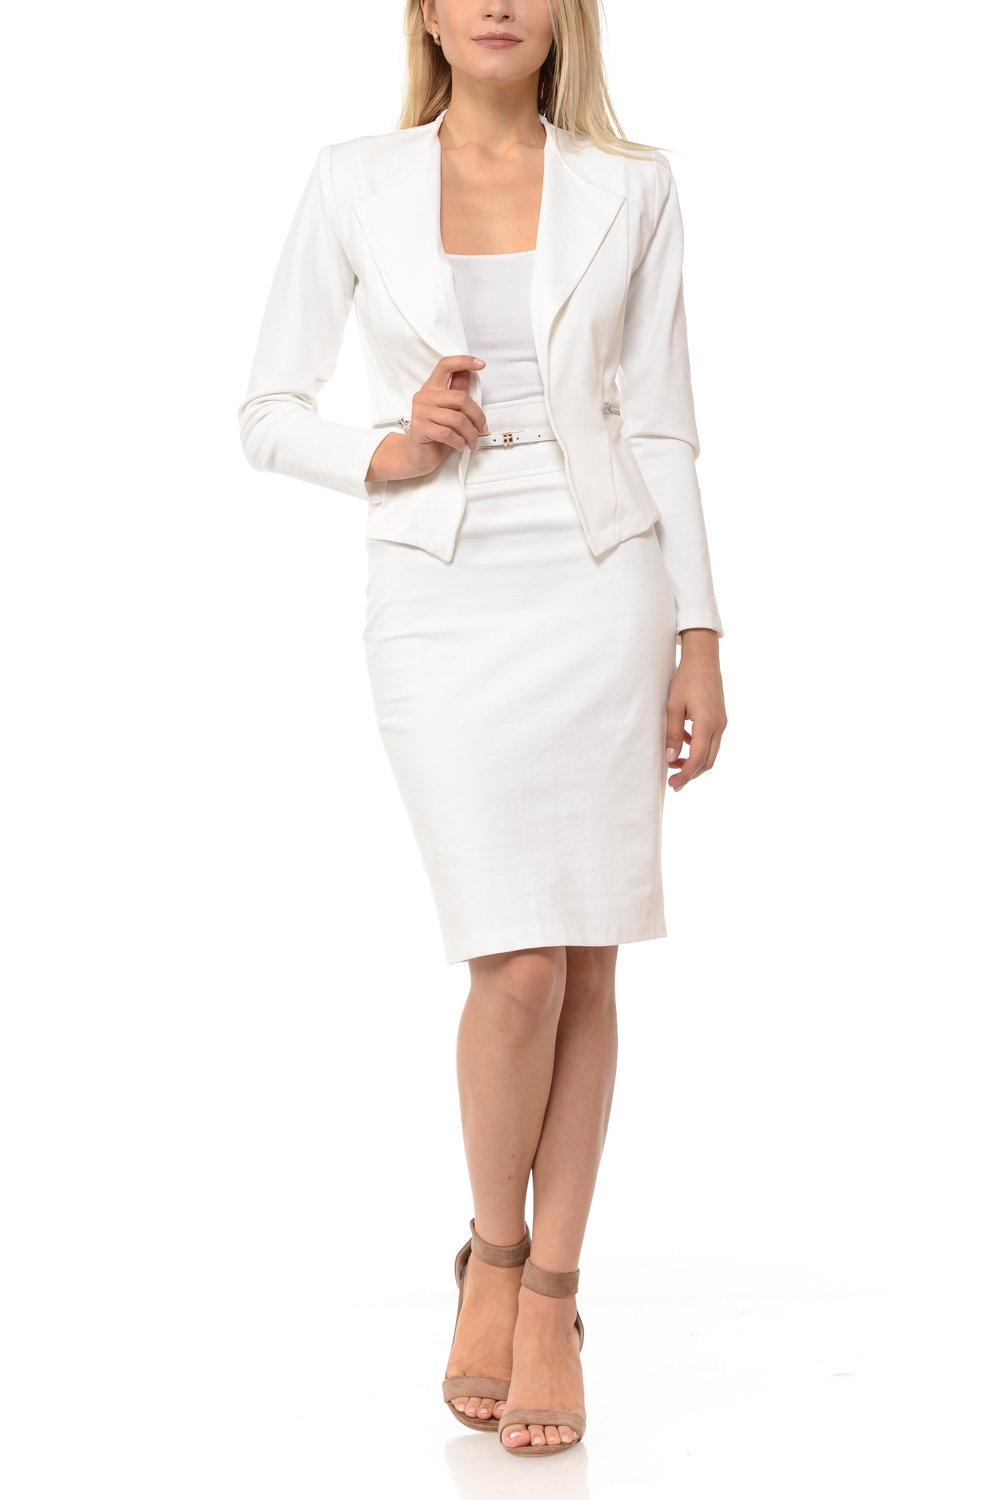 Sweethabit Womens Wear to Work Solid Skirt Suit Set (XLarge, White)